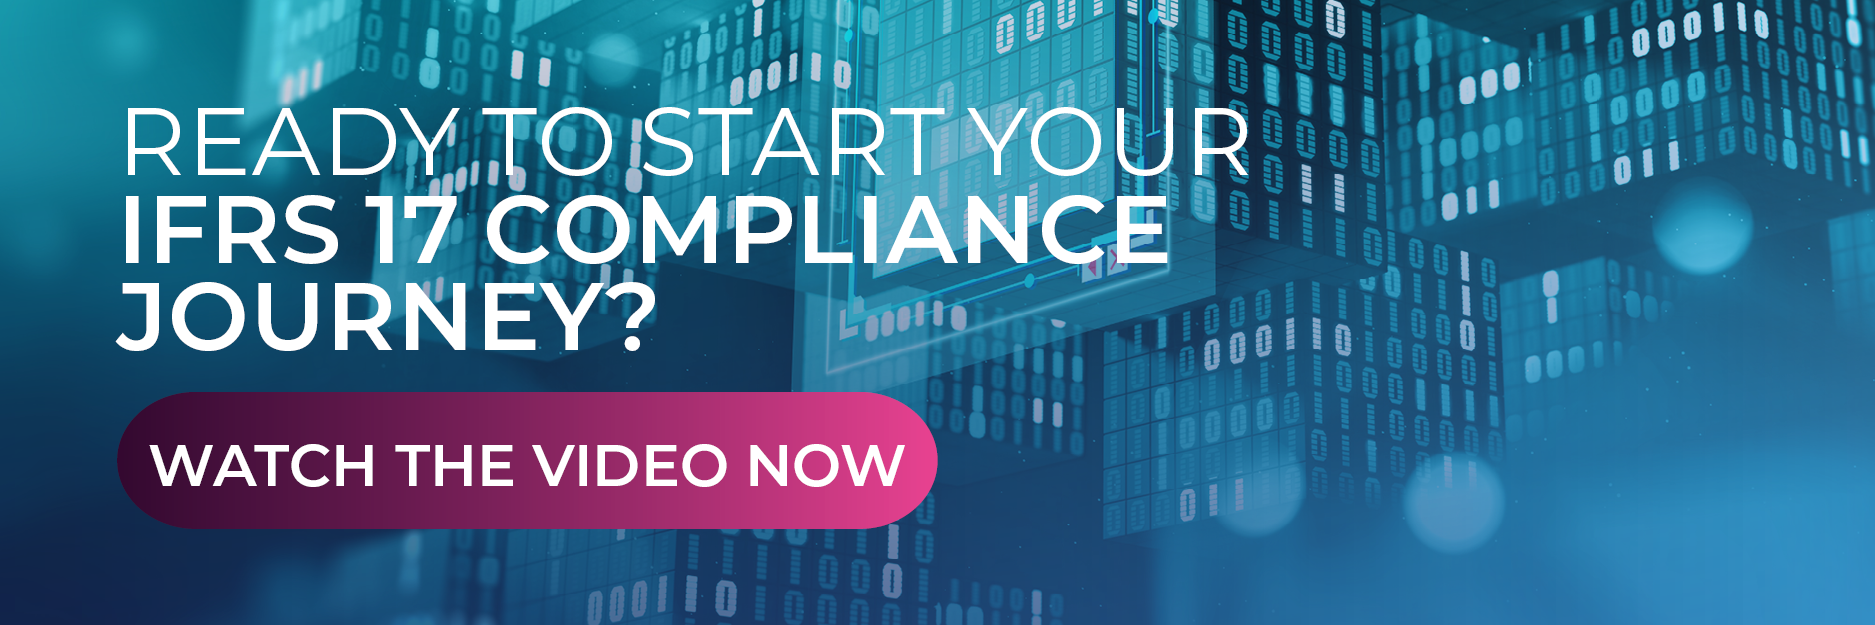 ifrs 17 compliance solution video